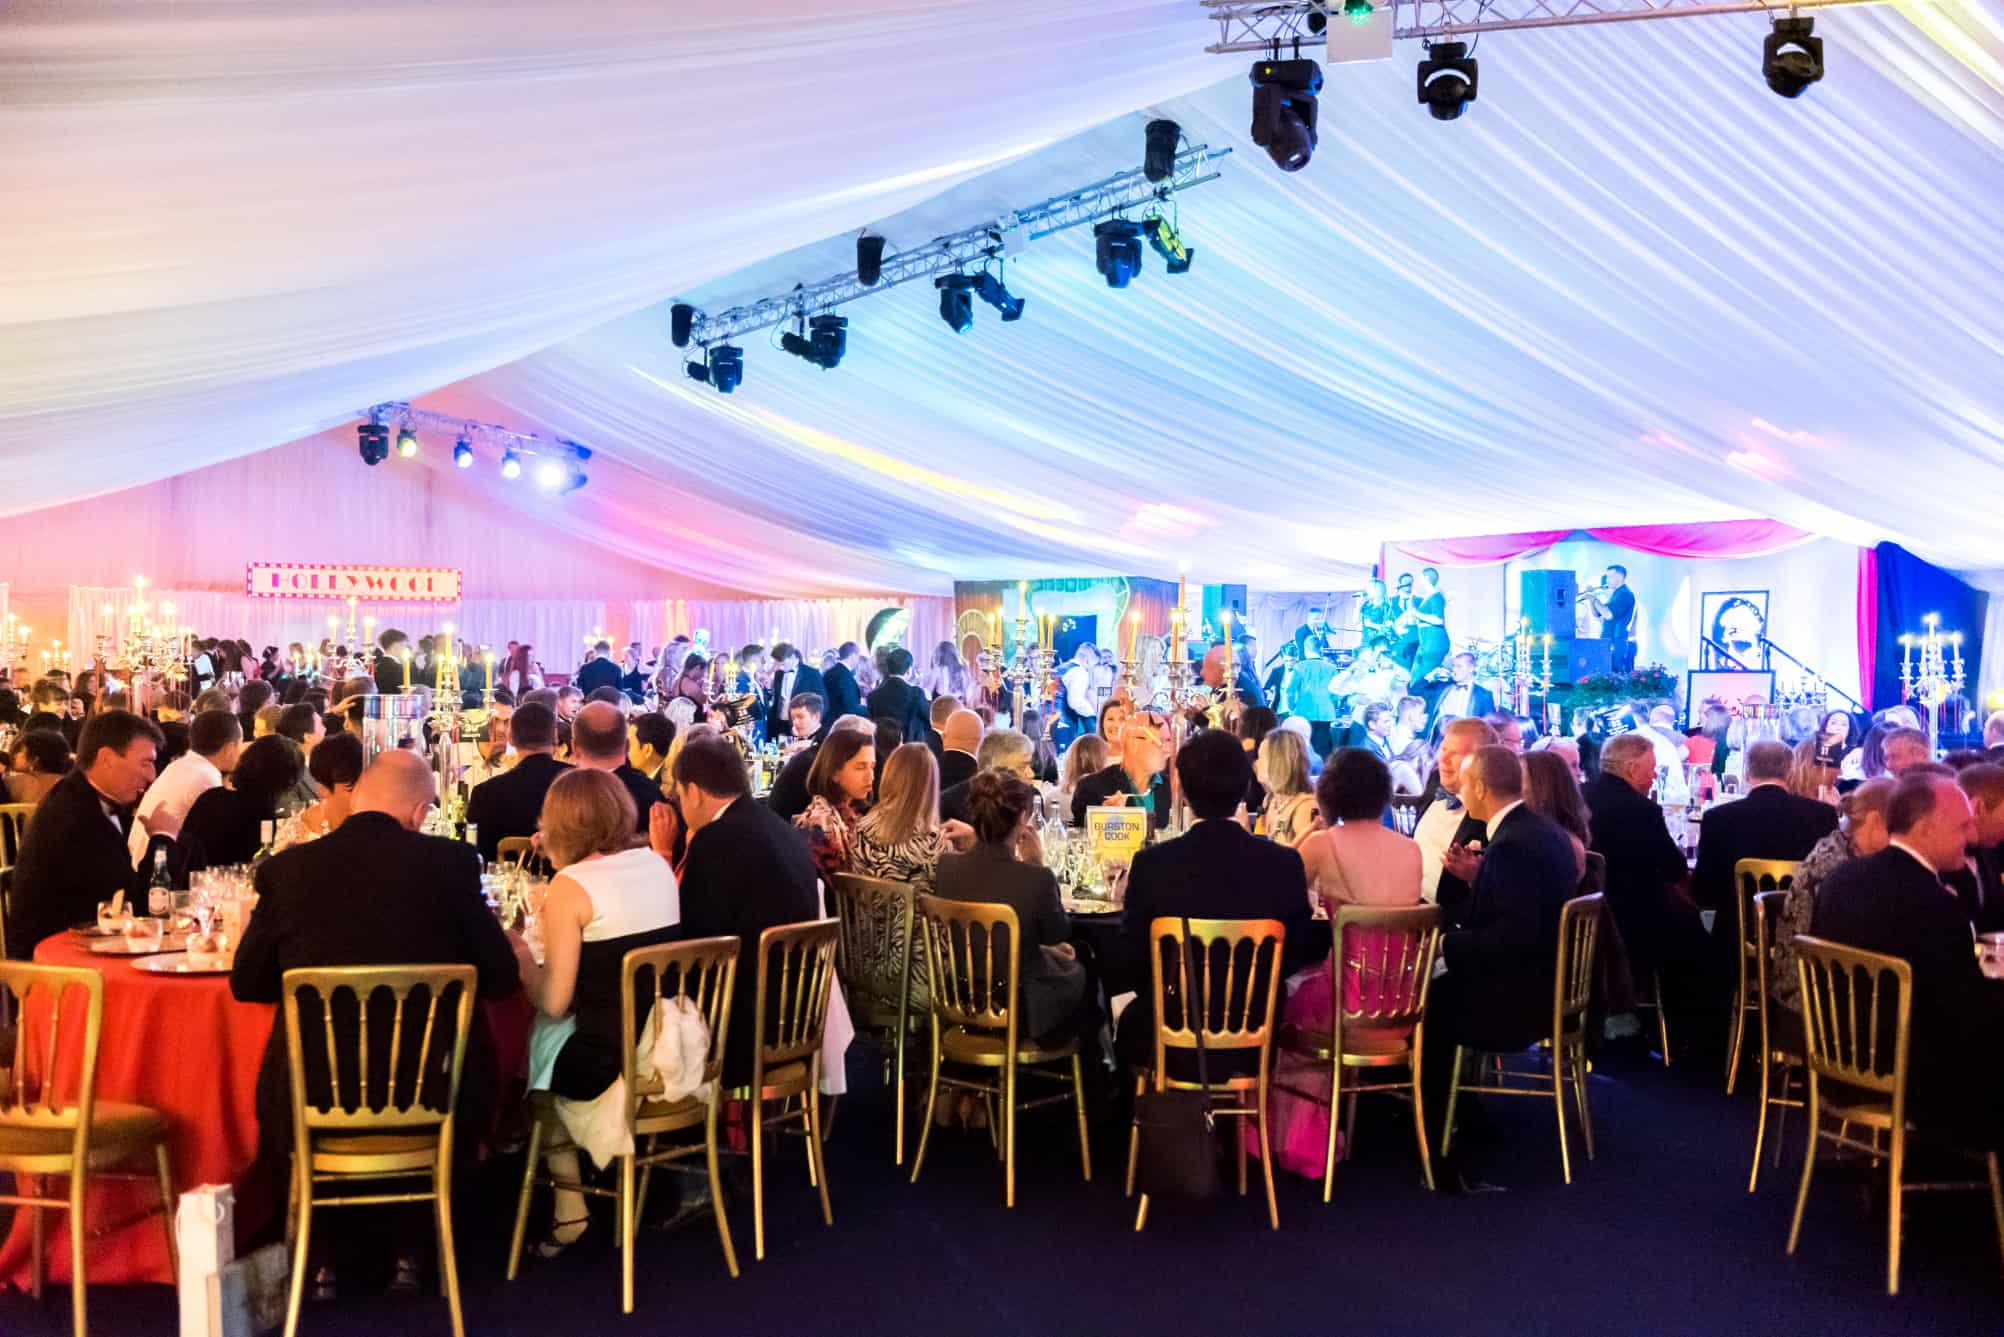 Within the marquee at Clifton College Ball